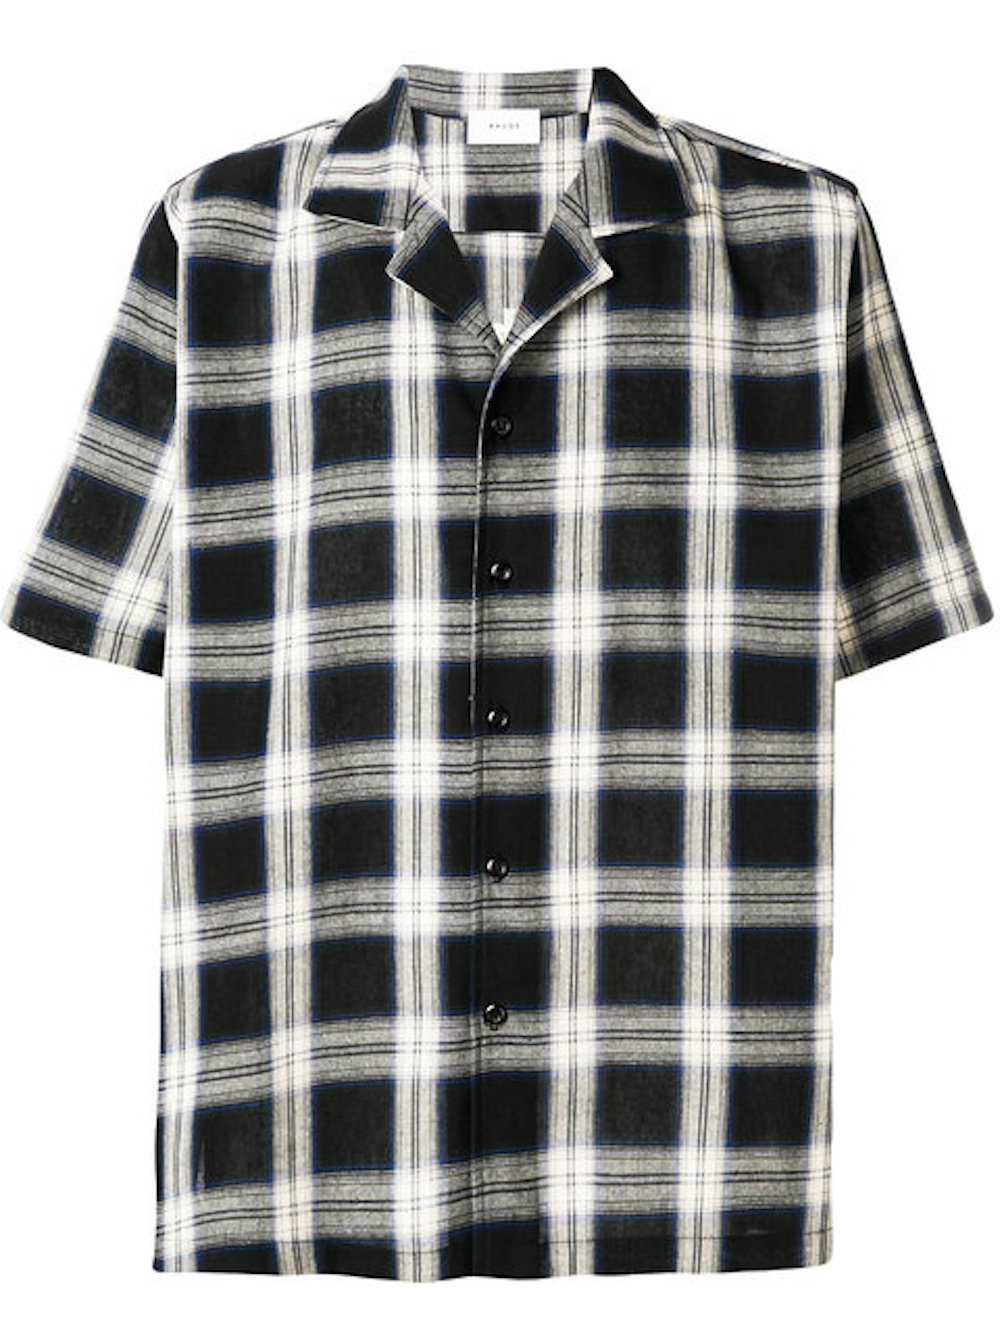 RHUDE Falling For You checked shirt